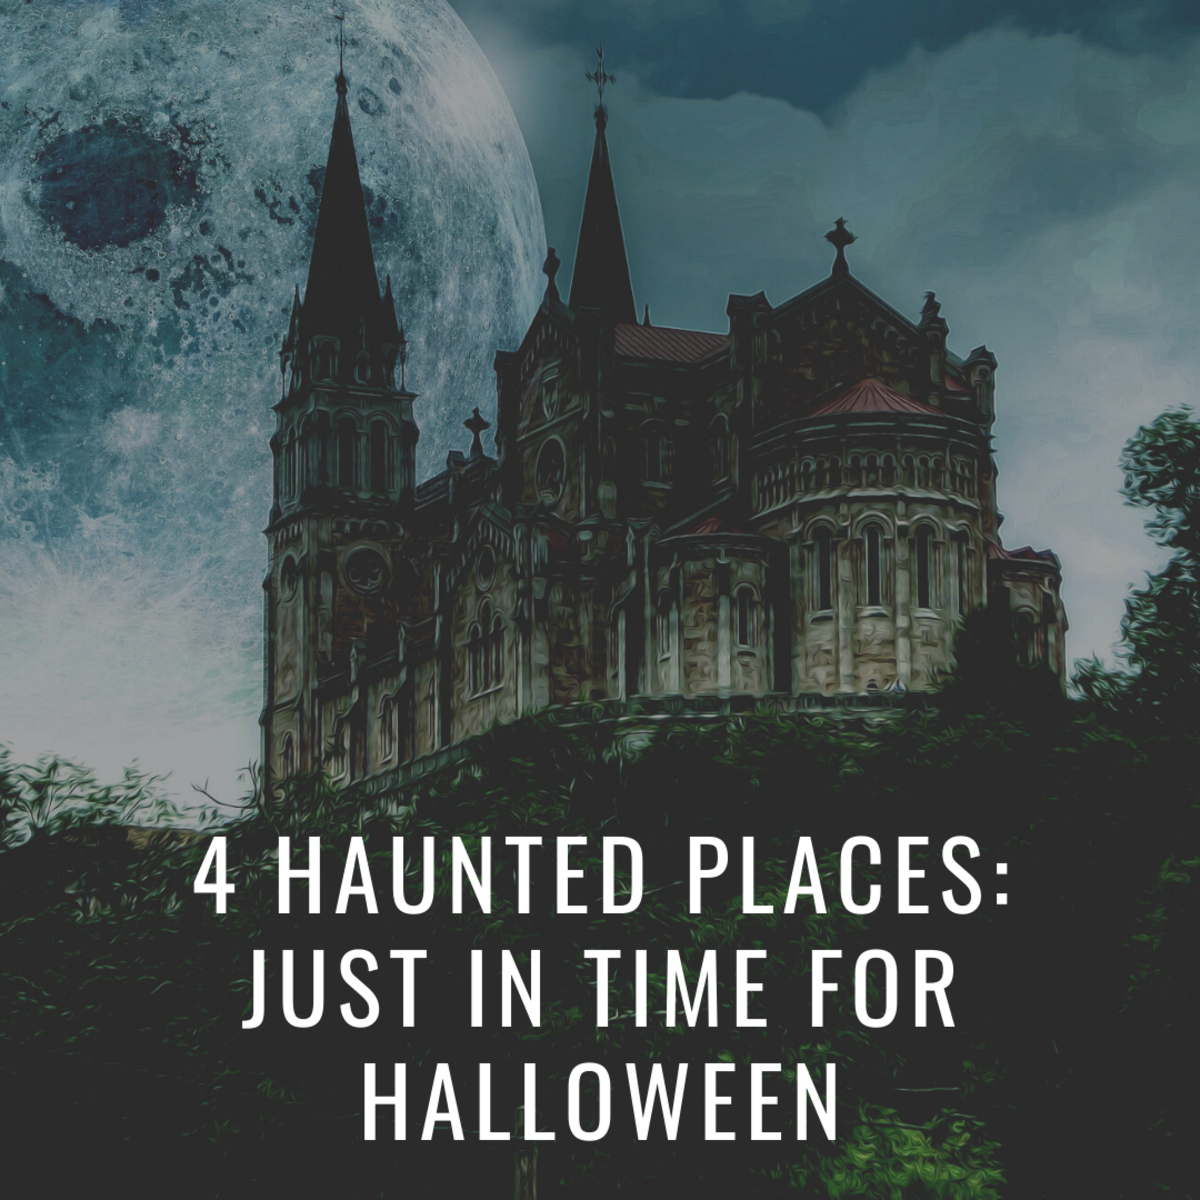 4 Haunted Places: Just in Time for Halloween